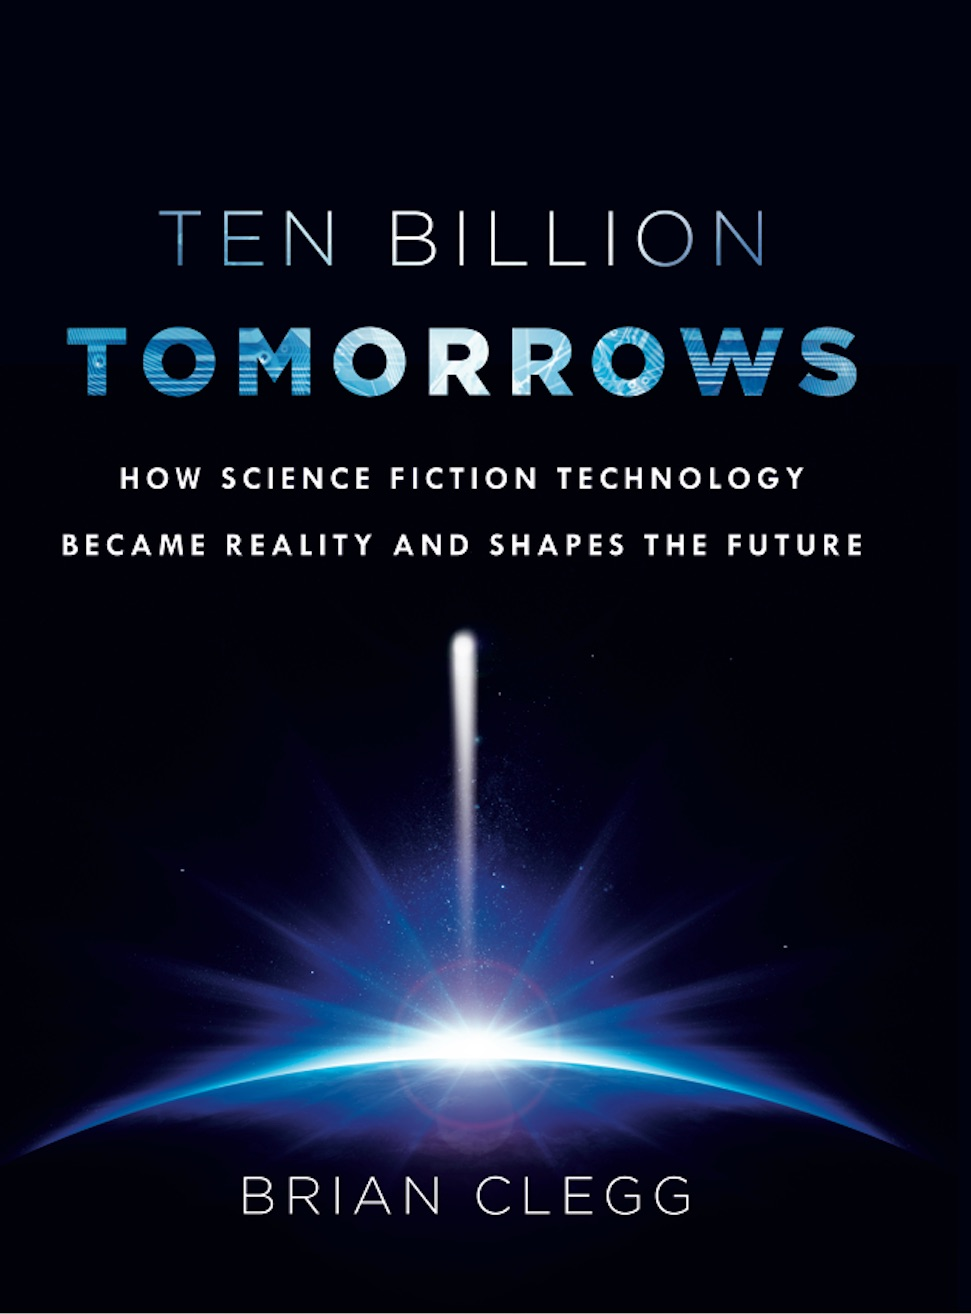 Ten Billion Tomorrows